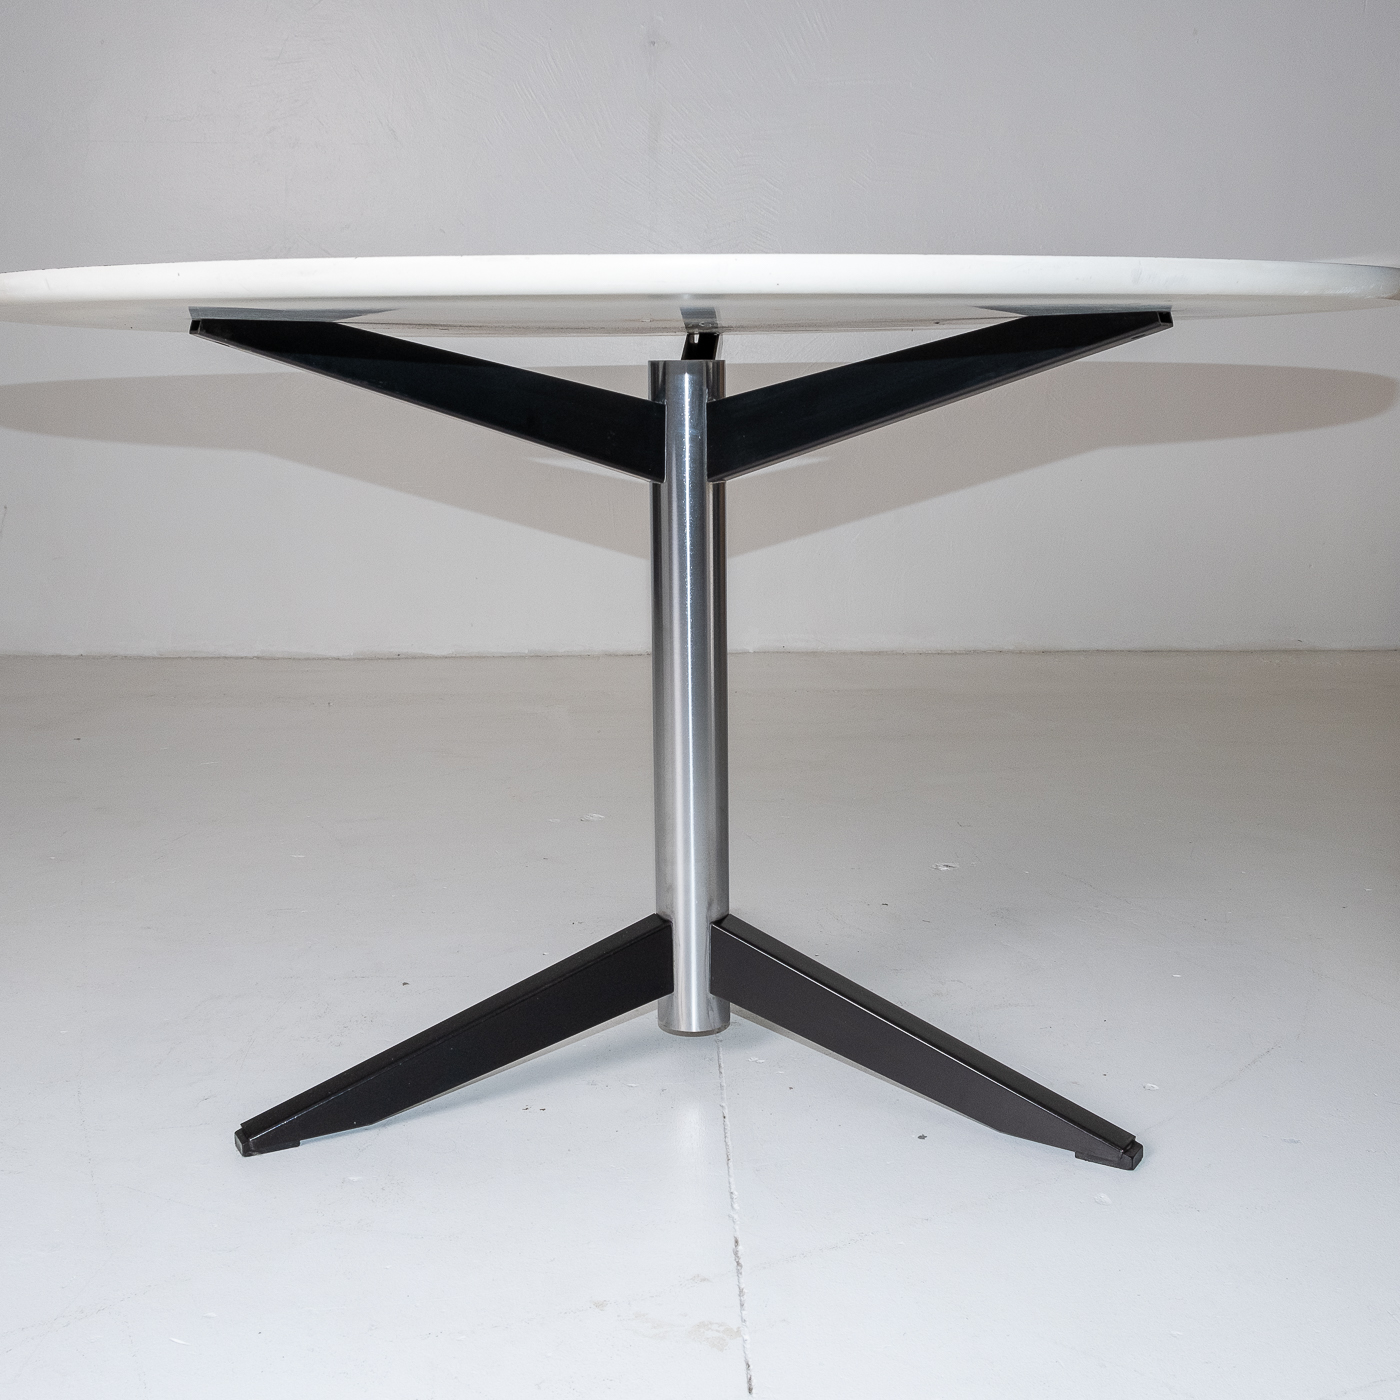 Model Te06 Dining Table By Martin Visser For 't Spectrum, 1960s, The Netherlands26